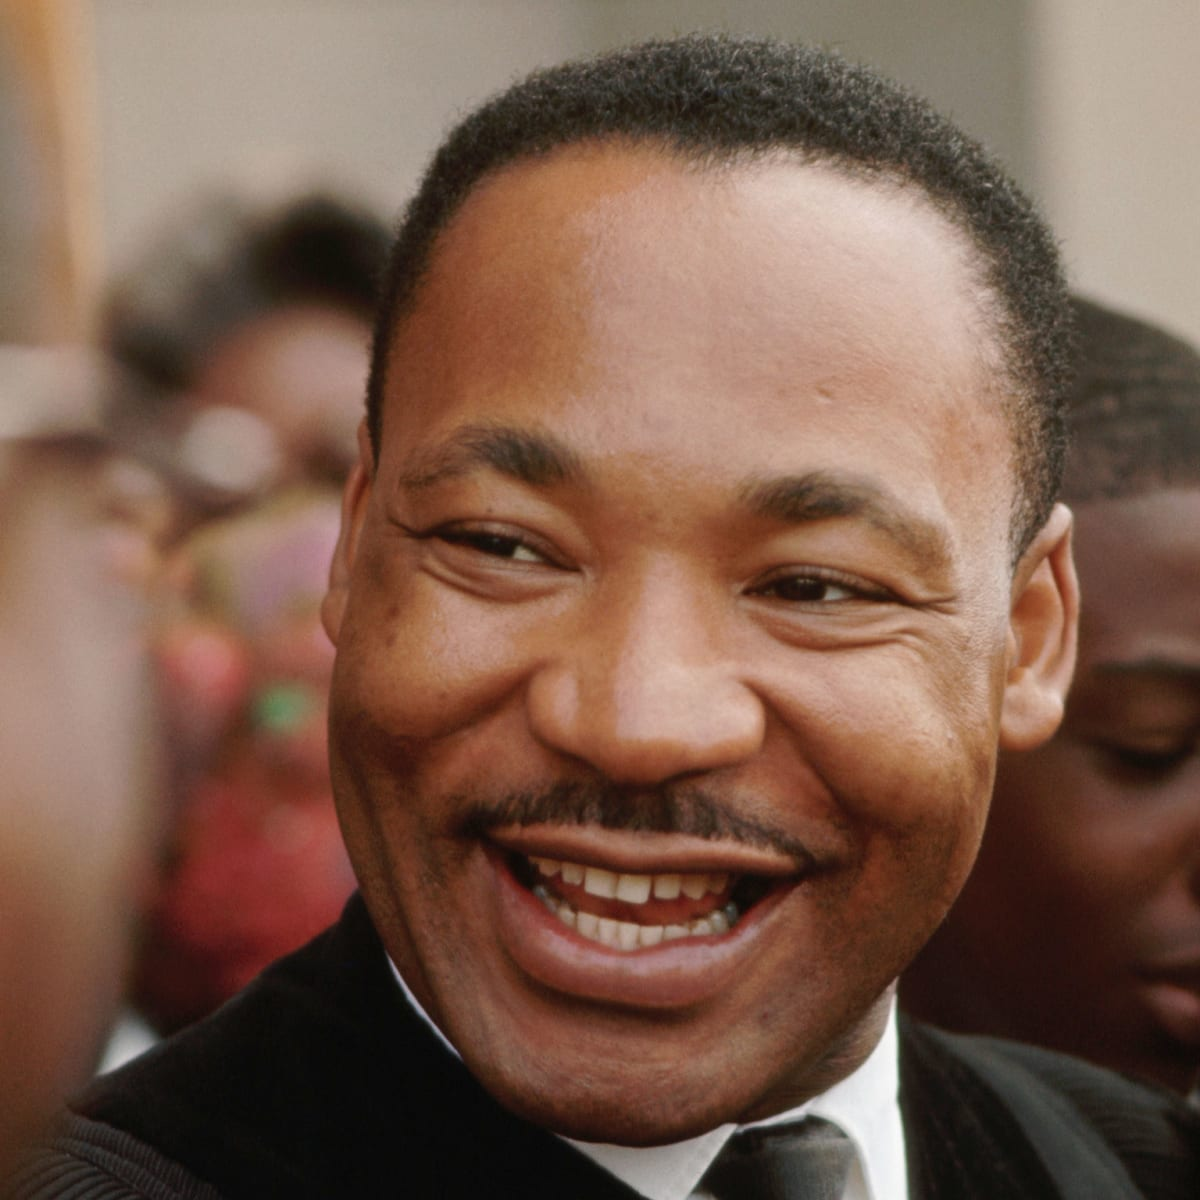 hith-10-things-you-may-not-know-about-martin-luther-king-jr